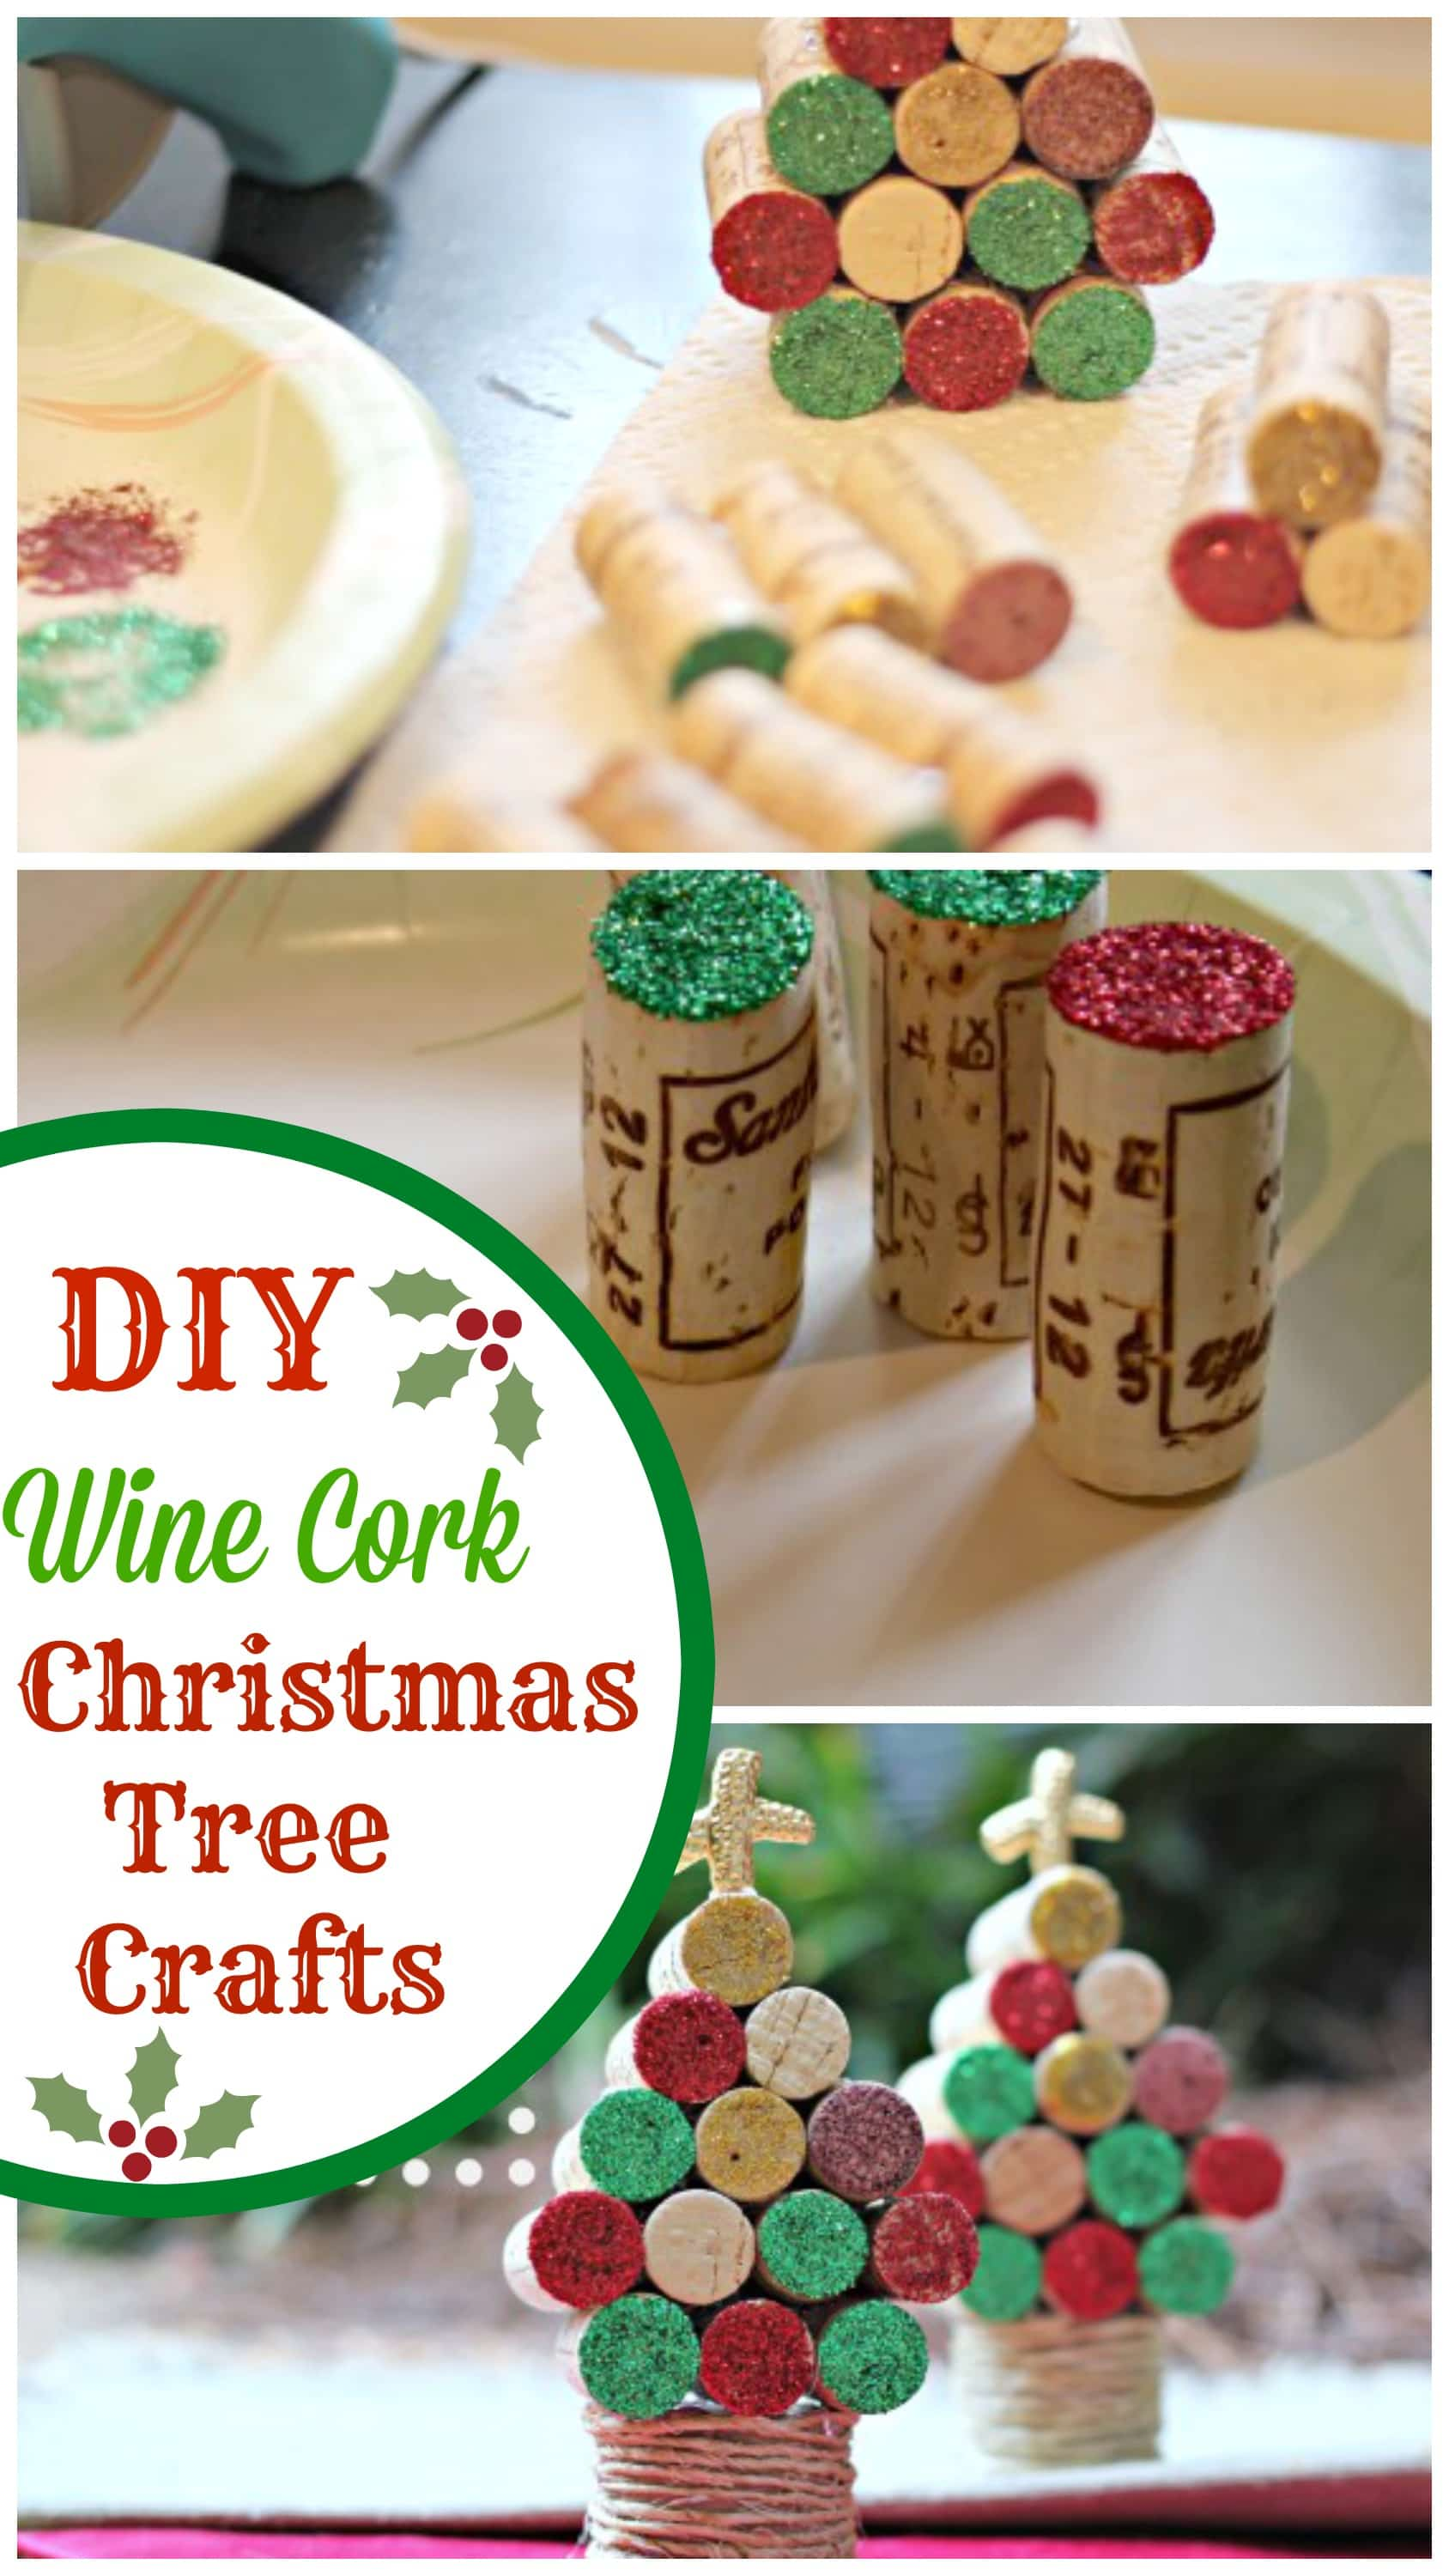 Wine Cork Christmas Tree Craft via PinkWhen.com